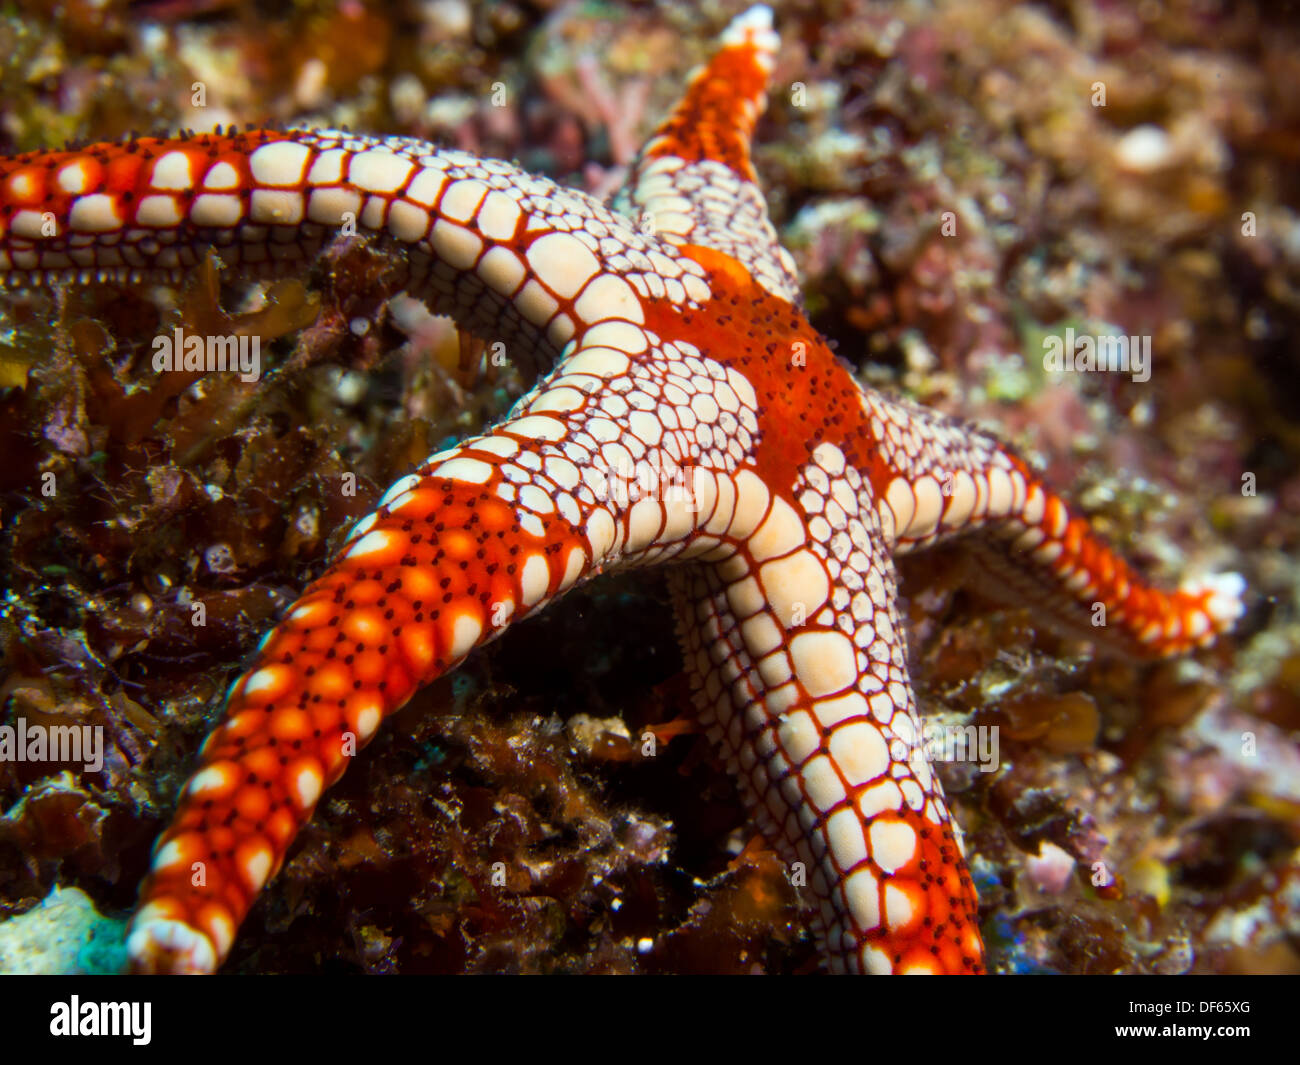 Colorful seastar on a coral reef at Bunaken Island, Indonesia - Stock Image